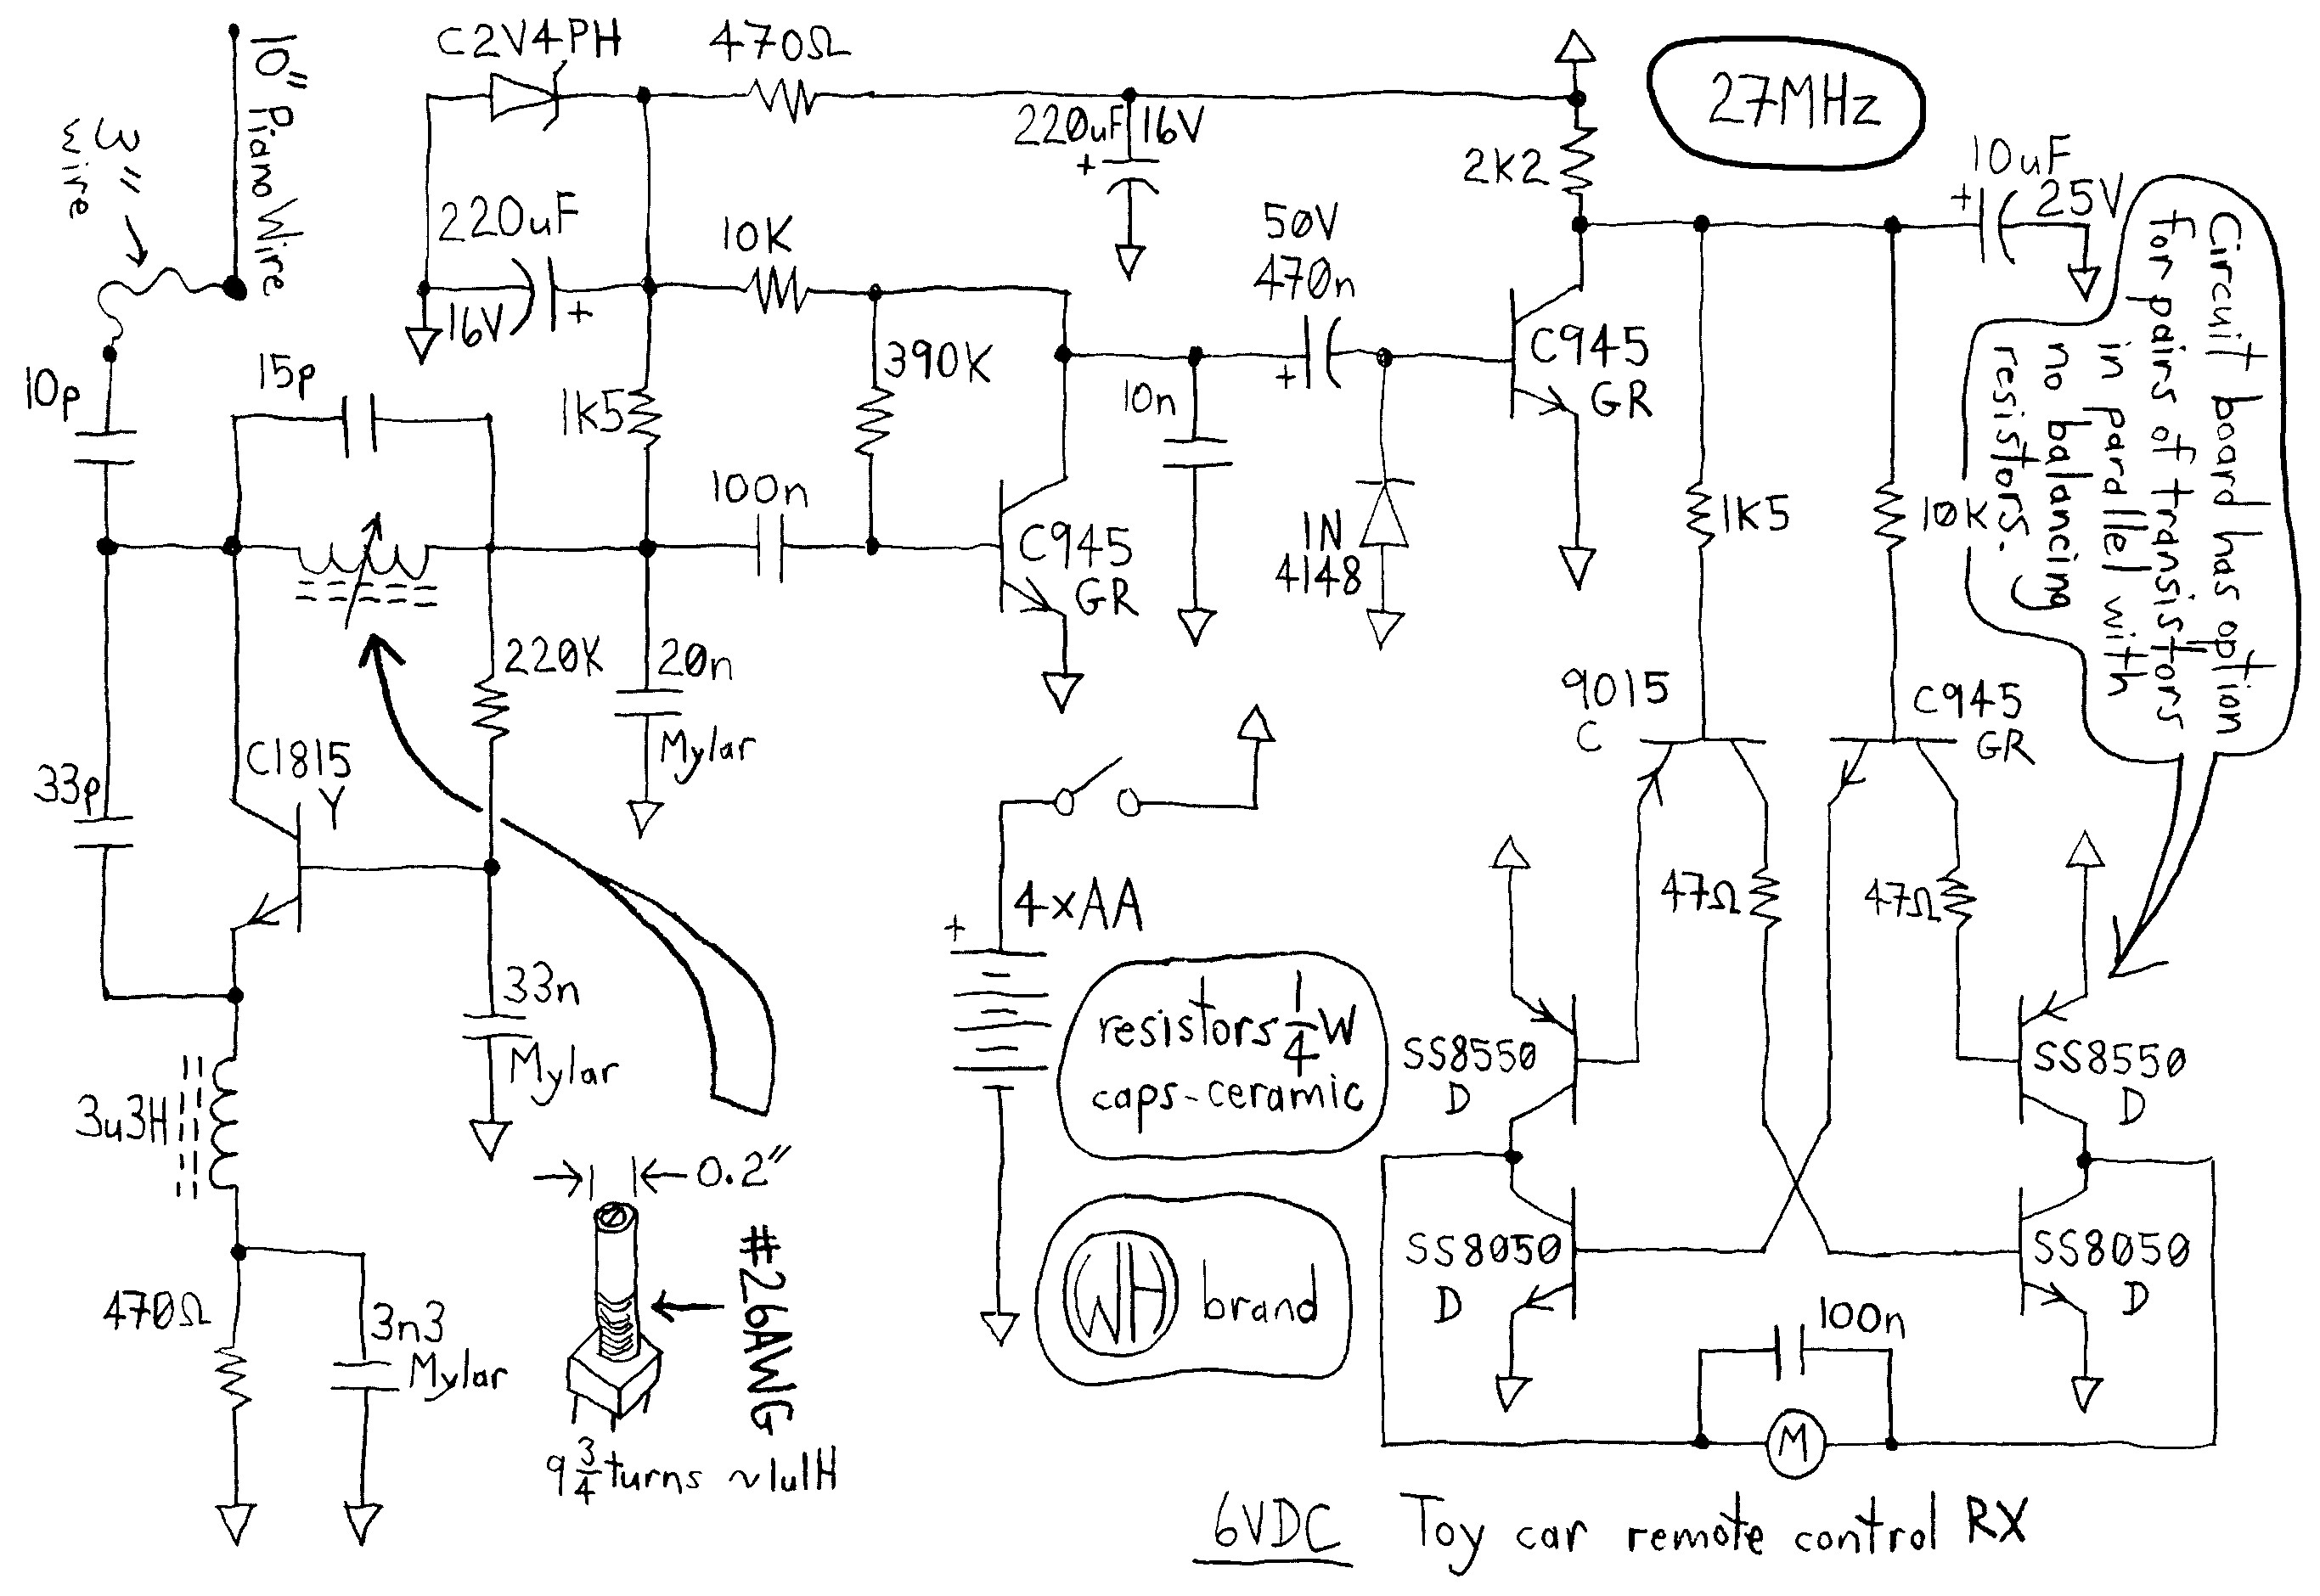 Rc Car Circuit Diagram Remote Control Car Drawing at Getdrawings